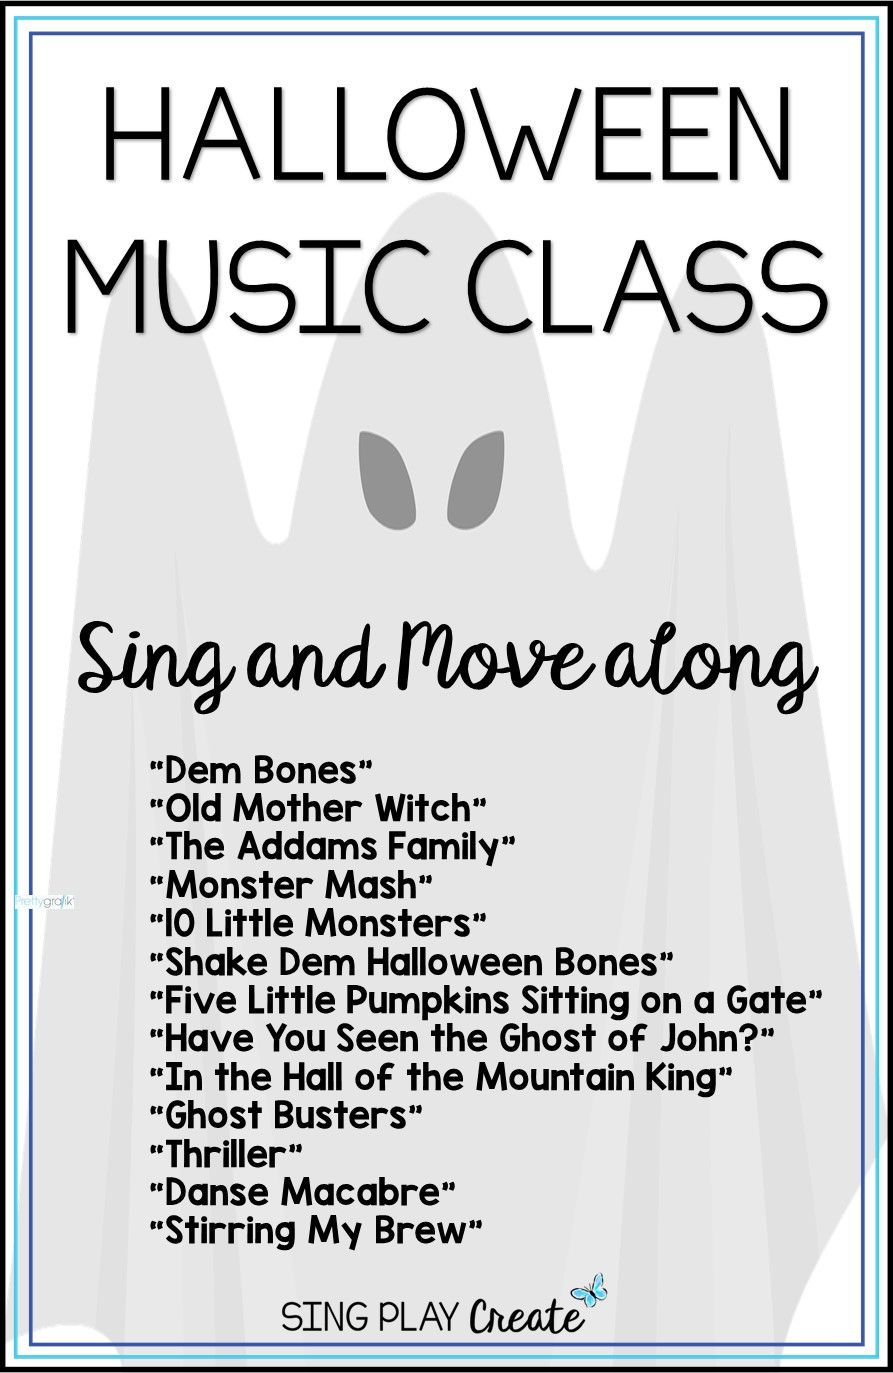 halloween music class sing and move-a-long - | halloween music